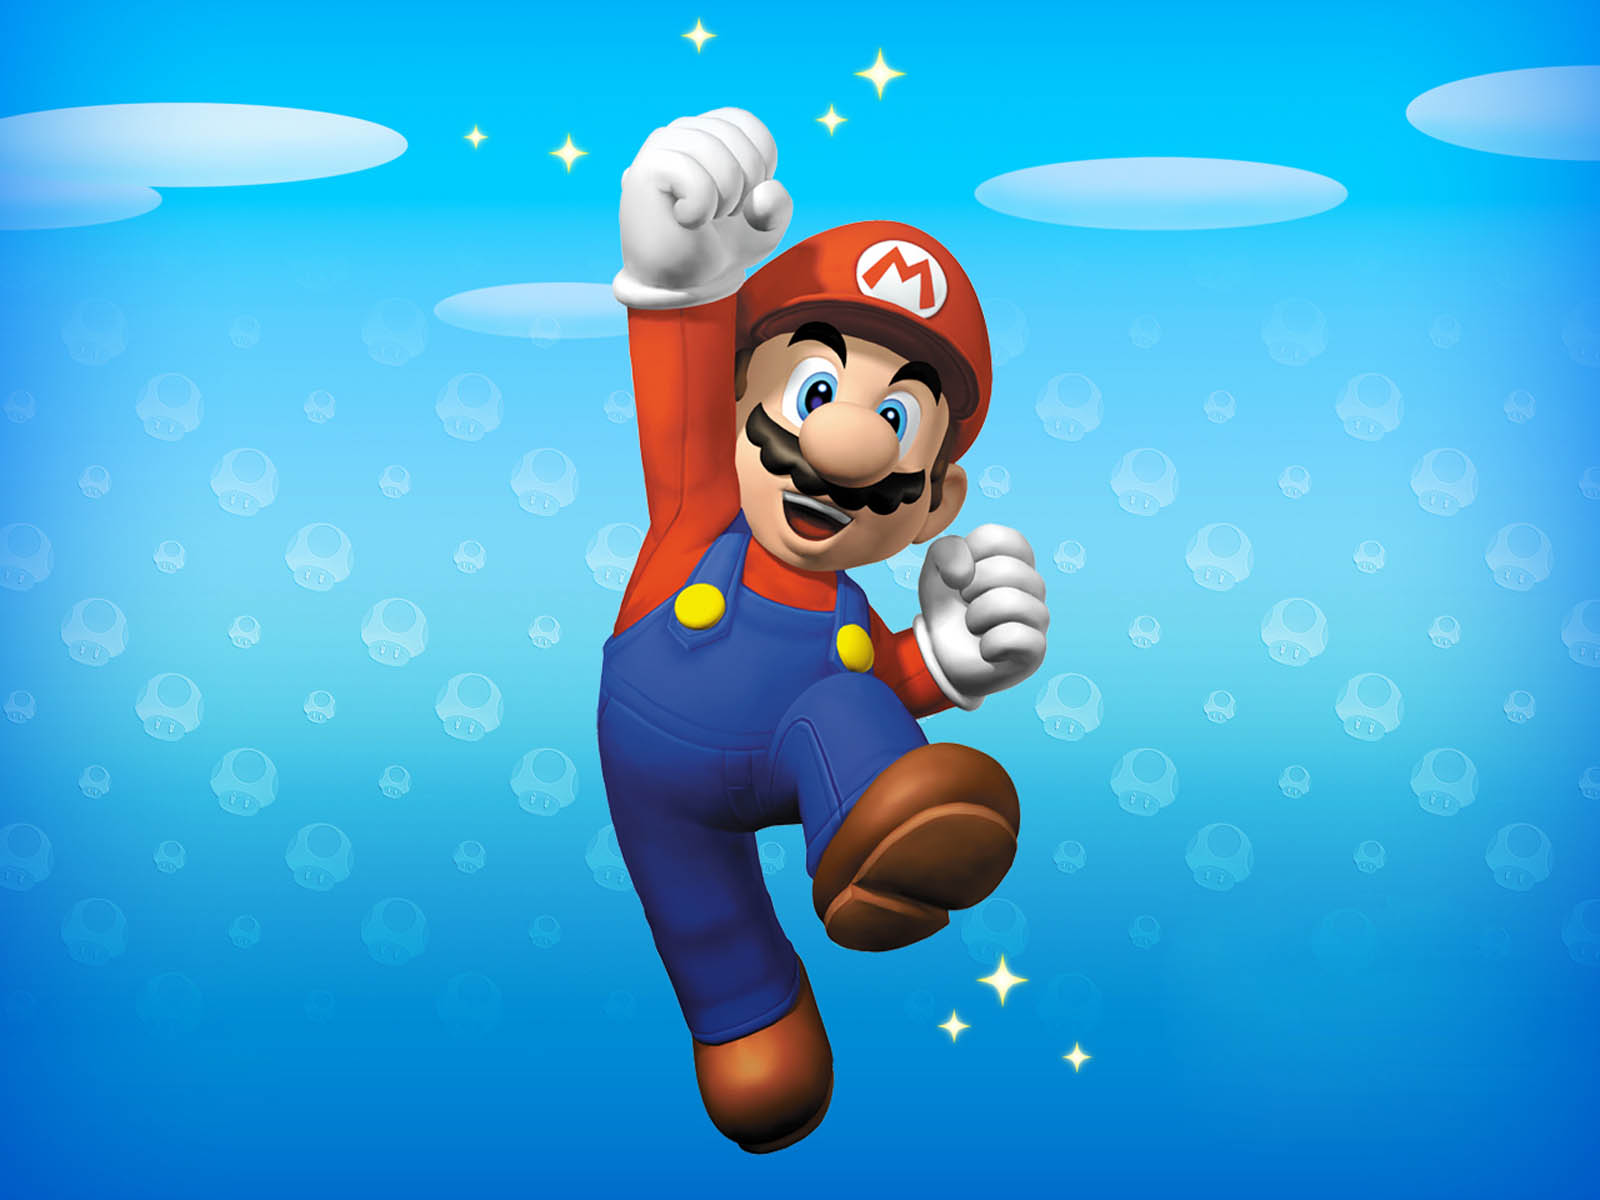 This Artificially Intelligent Mario Learns How To Chase Coins And